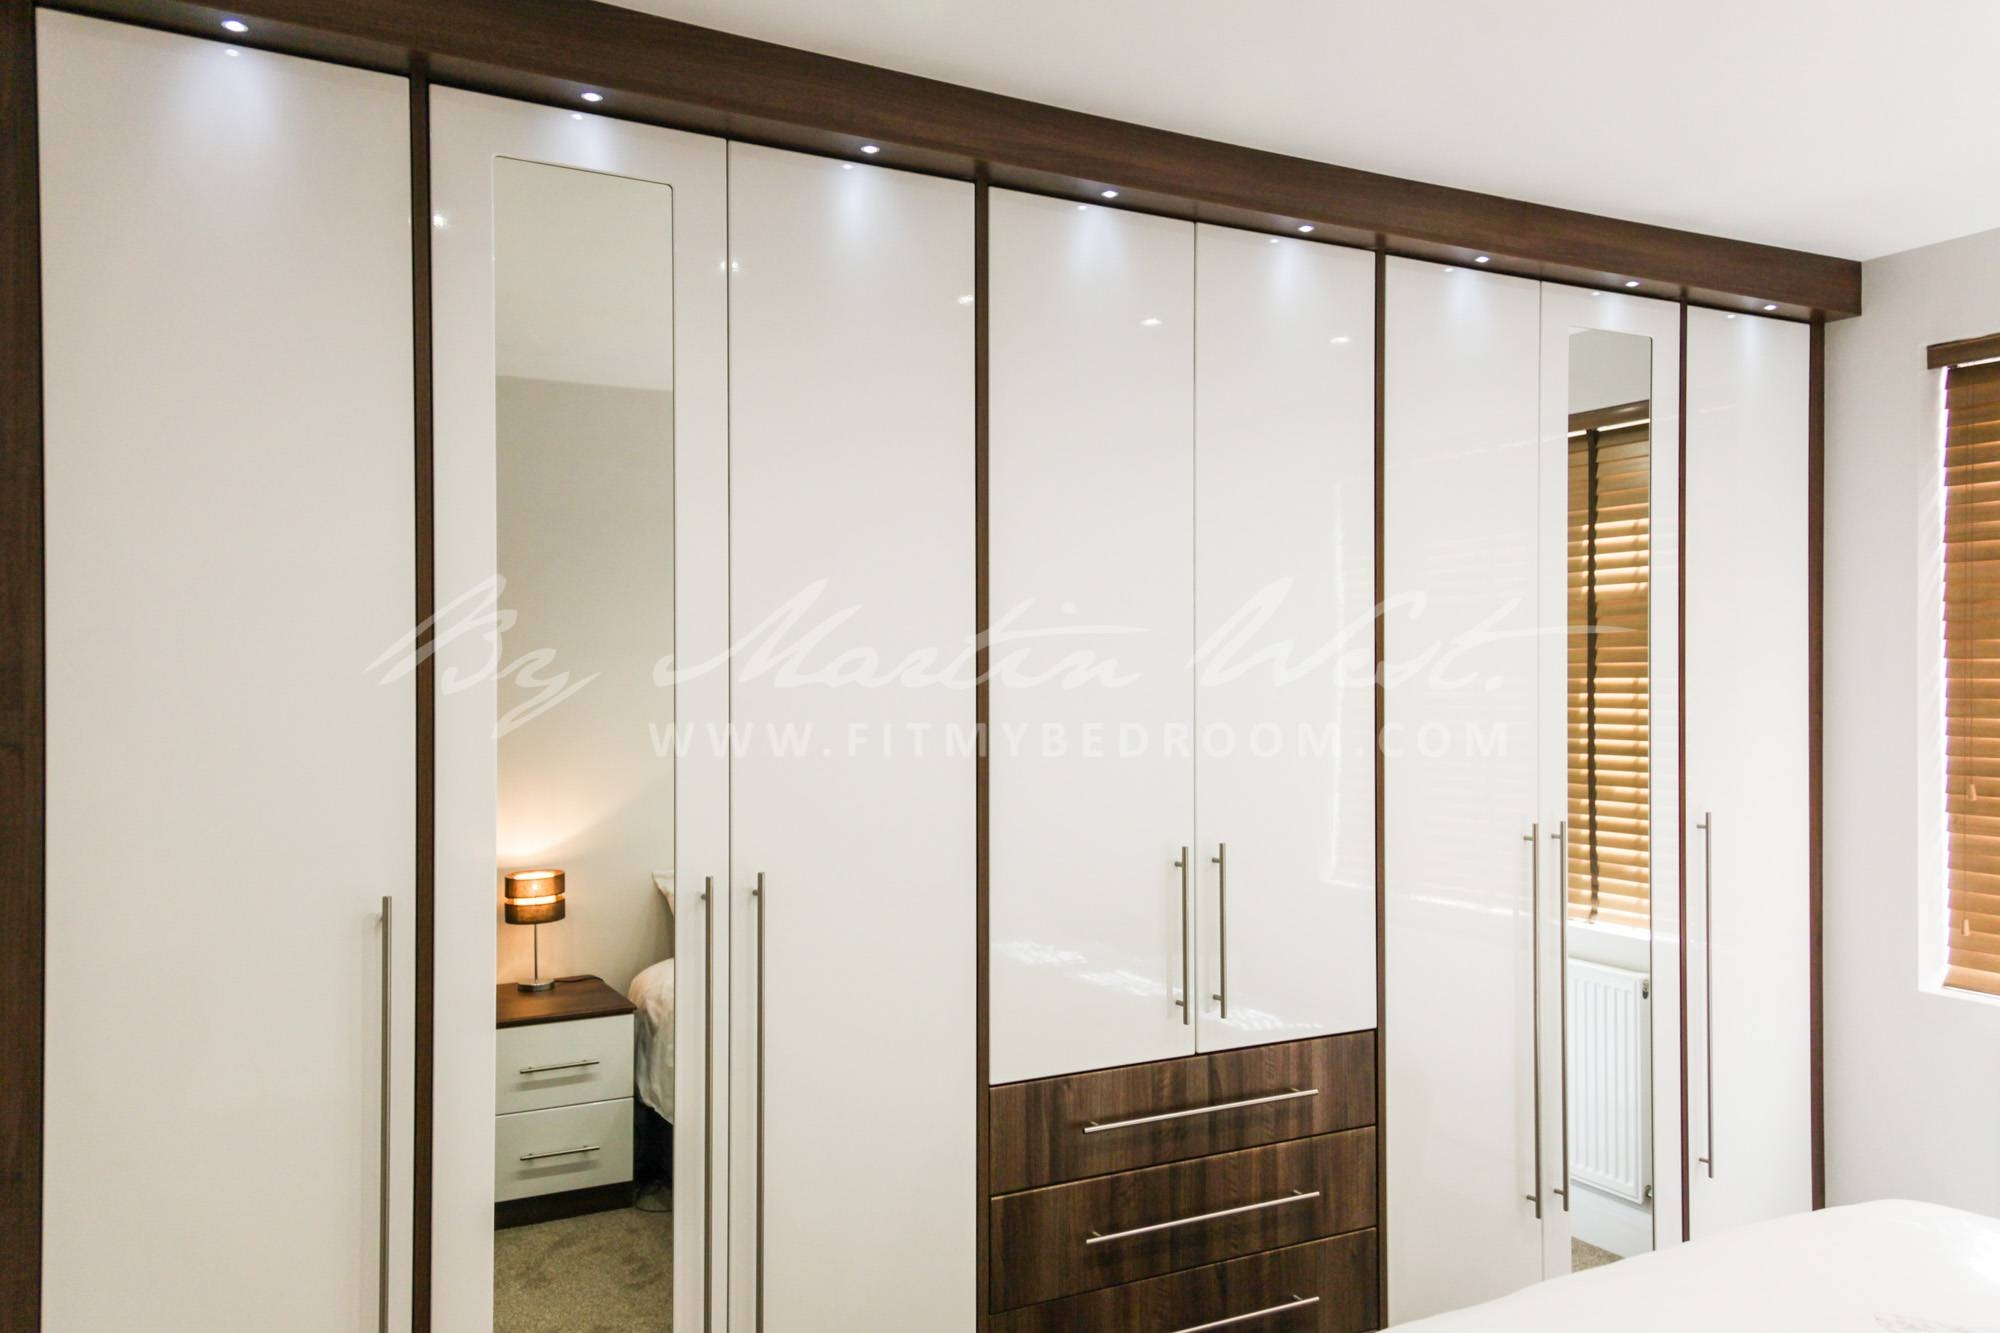 Fitted Wardrobes And Dressing Table - Fitted Wardrobes Ideas with regard to Wardrobes And Dressing Tables (Image 6 of 15)